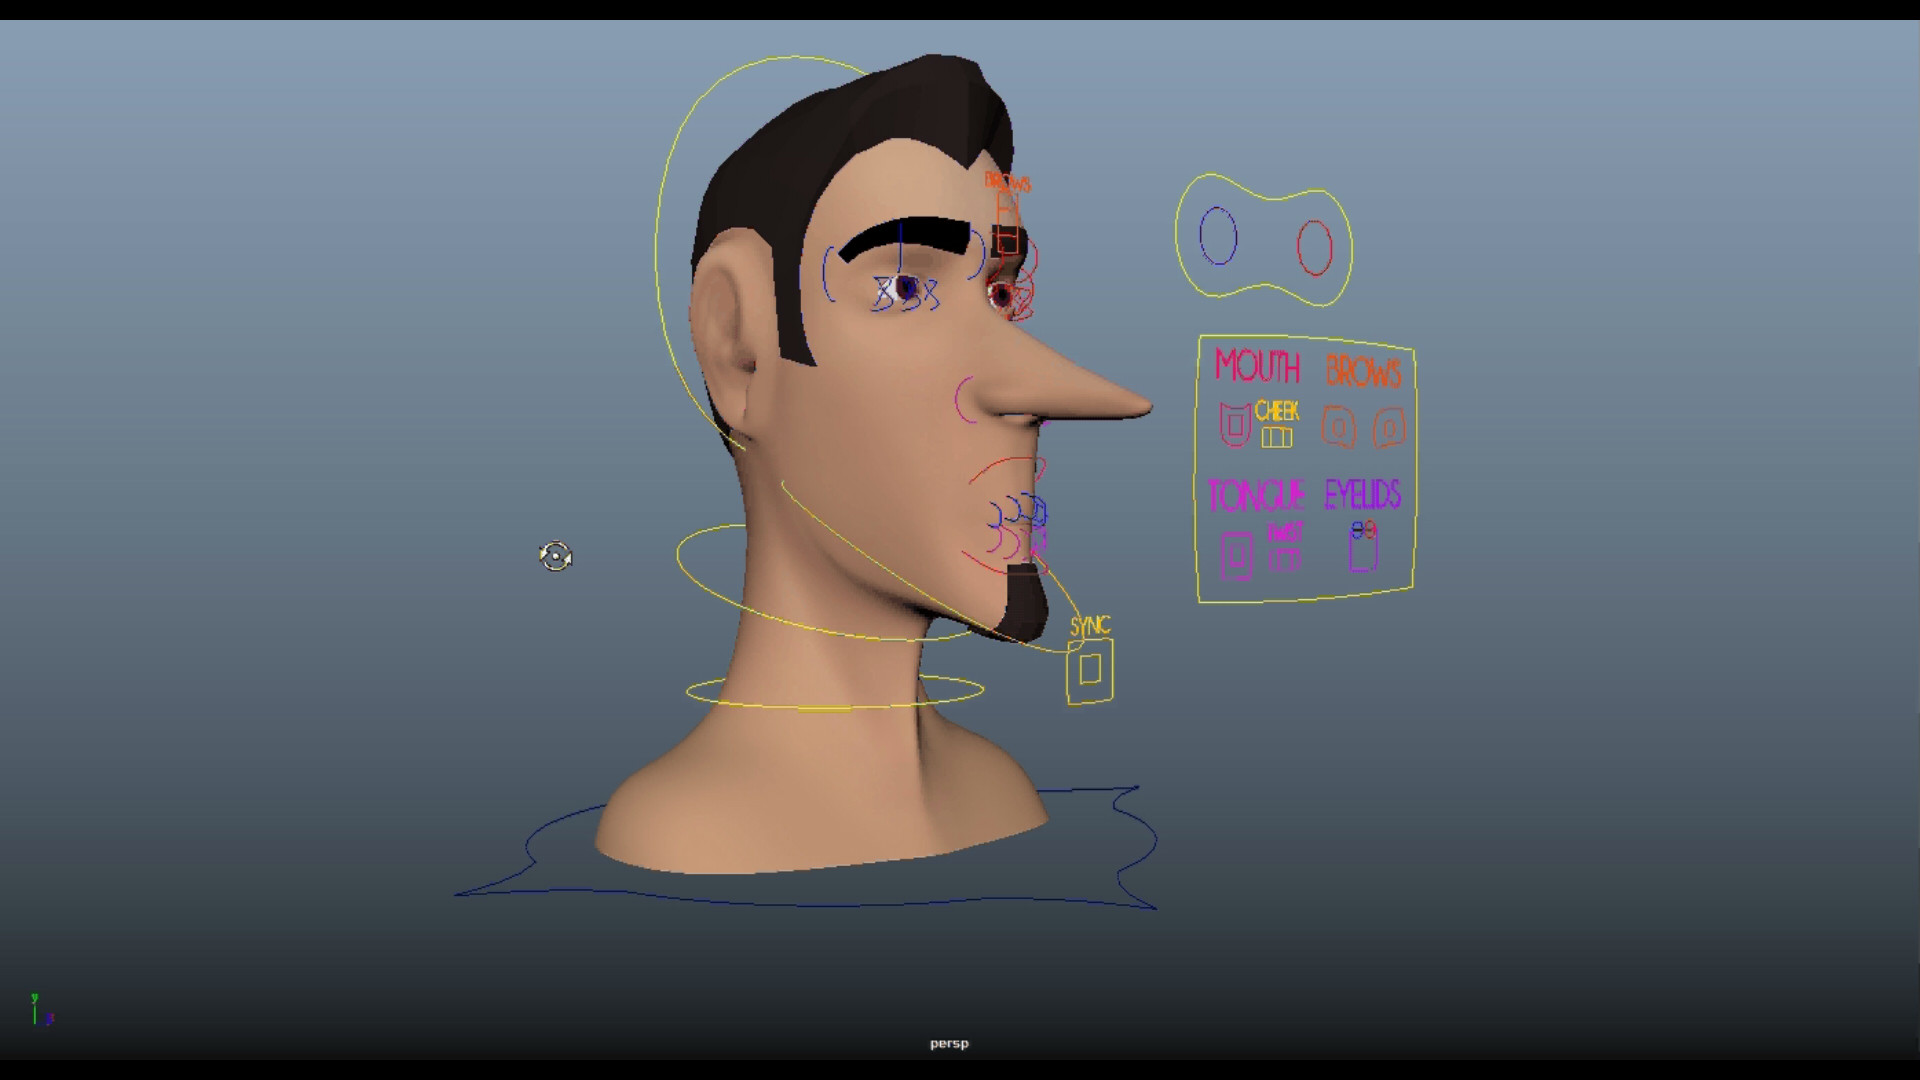 ArtStation - Facial Rig & Short Animation Project - The Raven, Luis